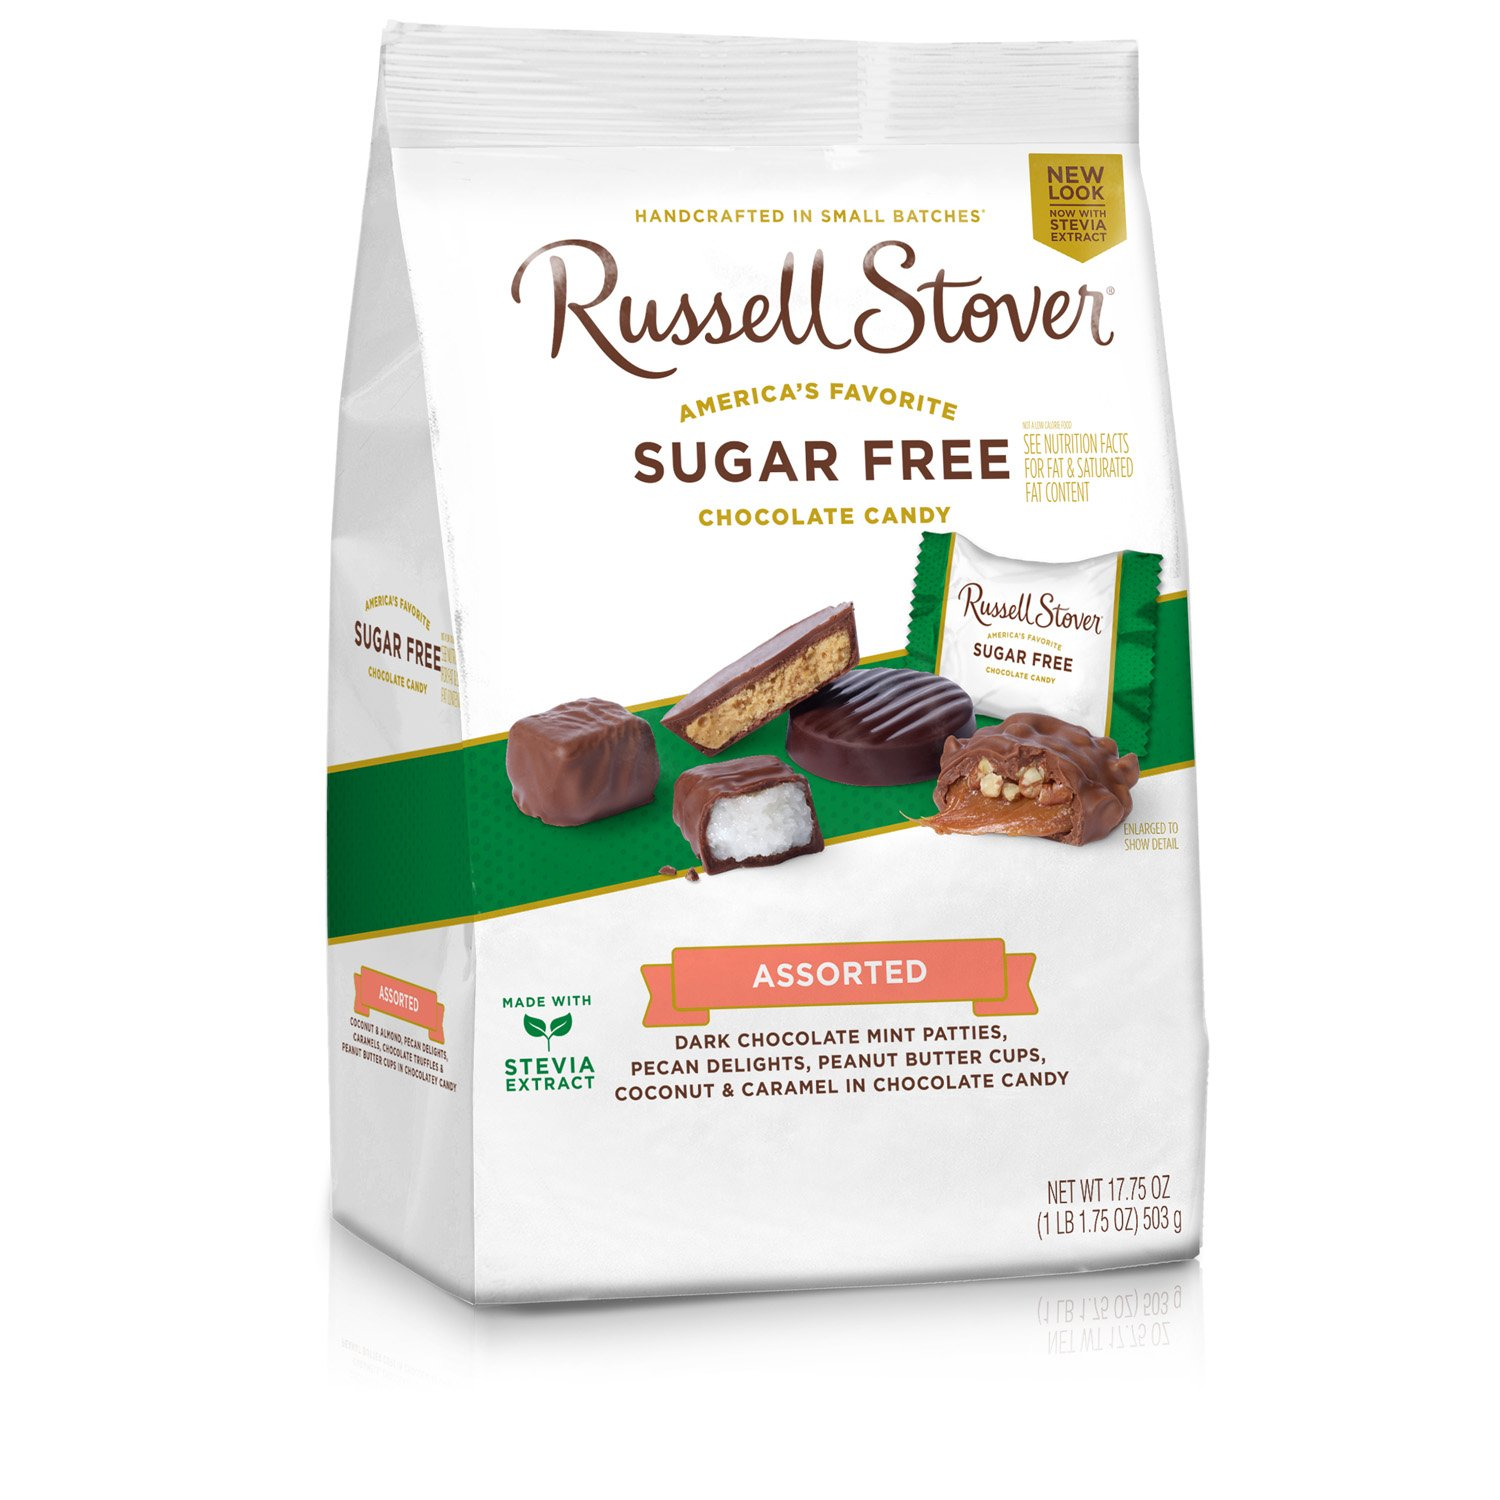 Russell Stover Sugar Free Assortment, 17.85 Ounce Bag, 4 Count by Russell Stover